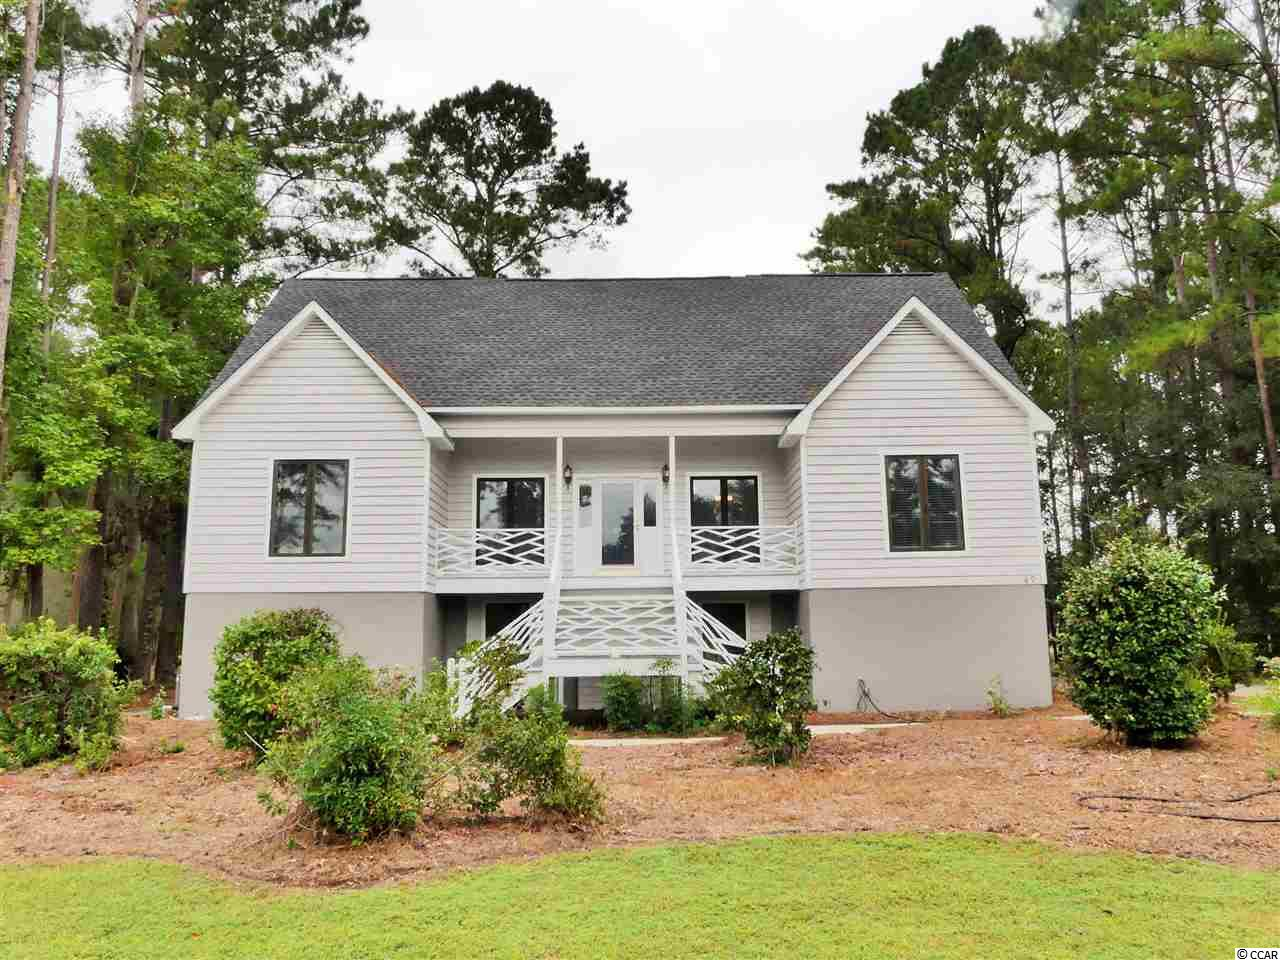 Private beach access, Soaring Ceilings, an abundance of natural light, and breathtaking golf course views. These are just a few of the words used to describe your new home in The River Club of Pawleys Island. Situated only a few yards from the 17th tee box, 49 Fairway Lane boasts more than just a pretty view. Recent renovations include a new luxury level kitchen with all new stainless appliances, updated bathrooms, hardwood flooring, new carpet in the bedrooms, updated fixtures, and so much more. In addition, the ground floor area houses a full guest suite that could also be used as climate controlled storage, a game room, or even a man-cave. The River Club is a well establish gated community offering private beach access through Litchfield by the Sea, Tennis, Pools, Golf, and much more.